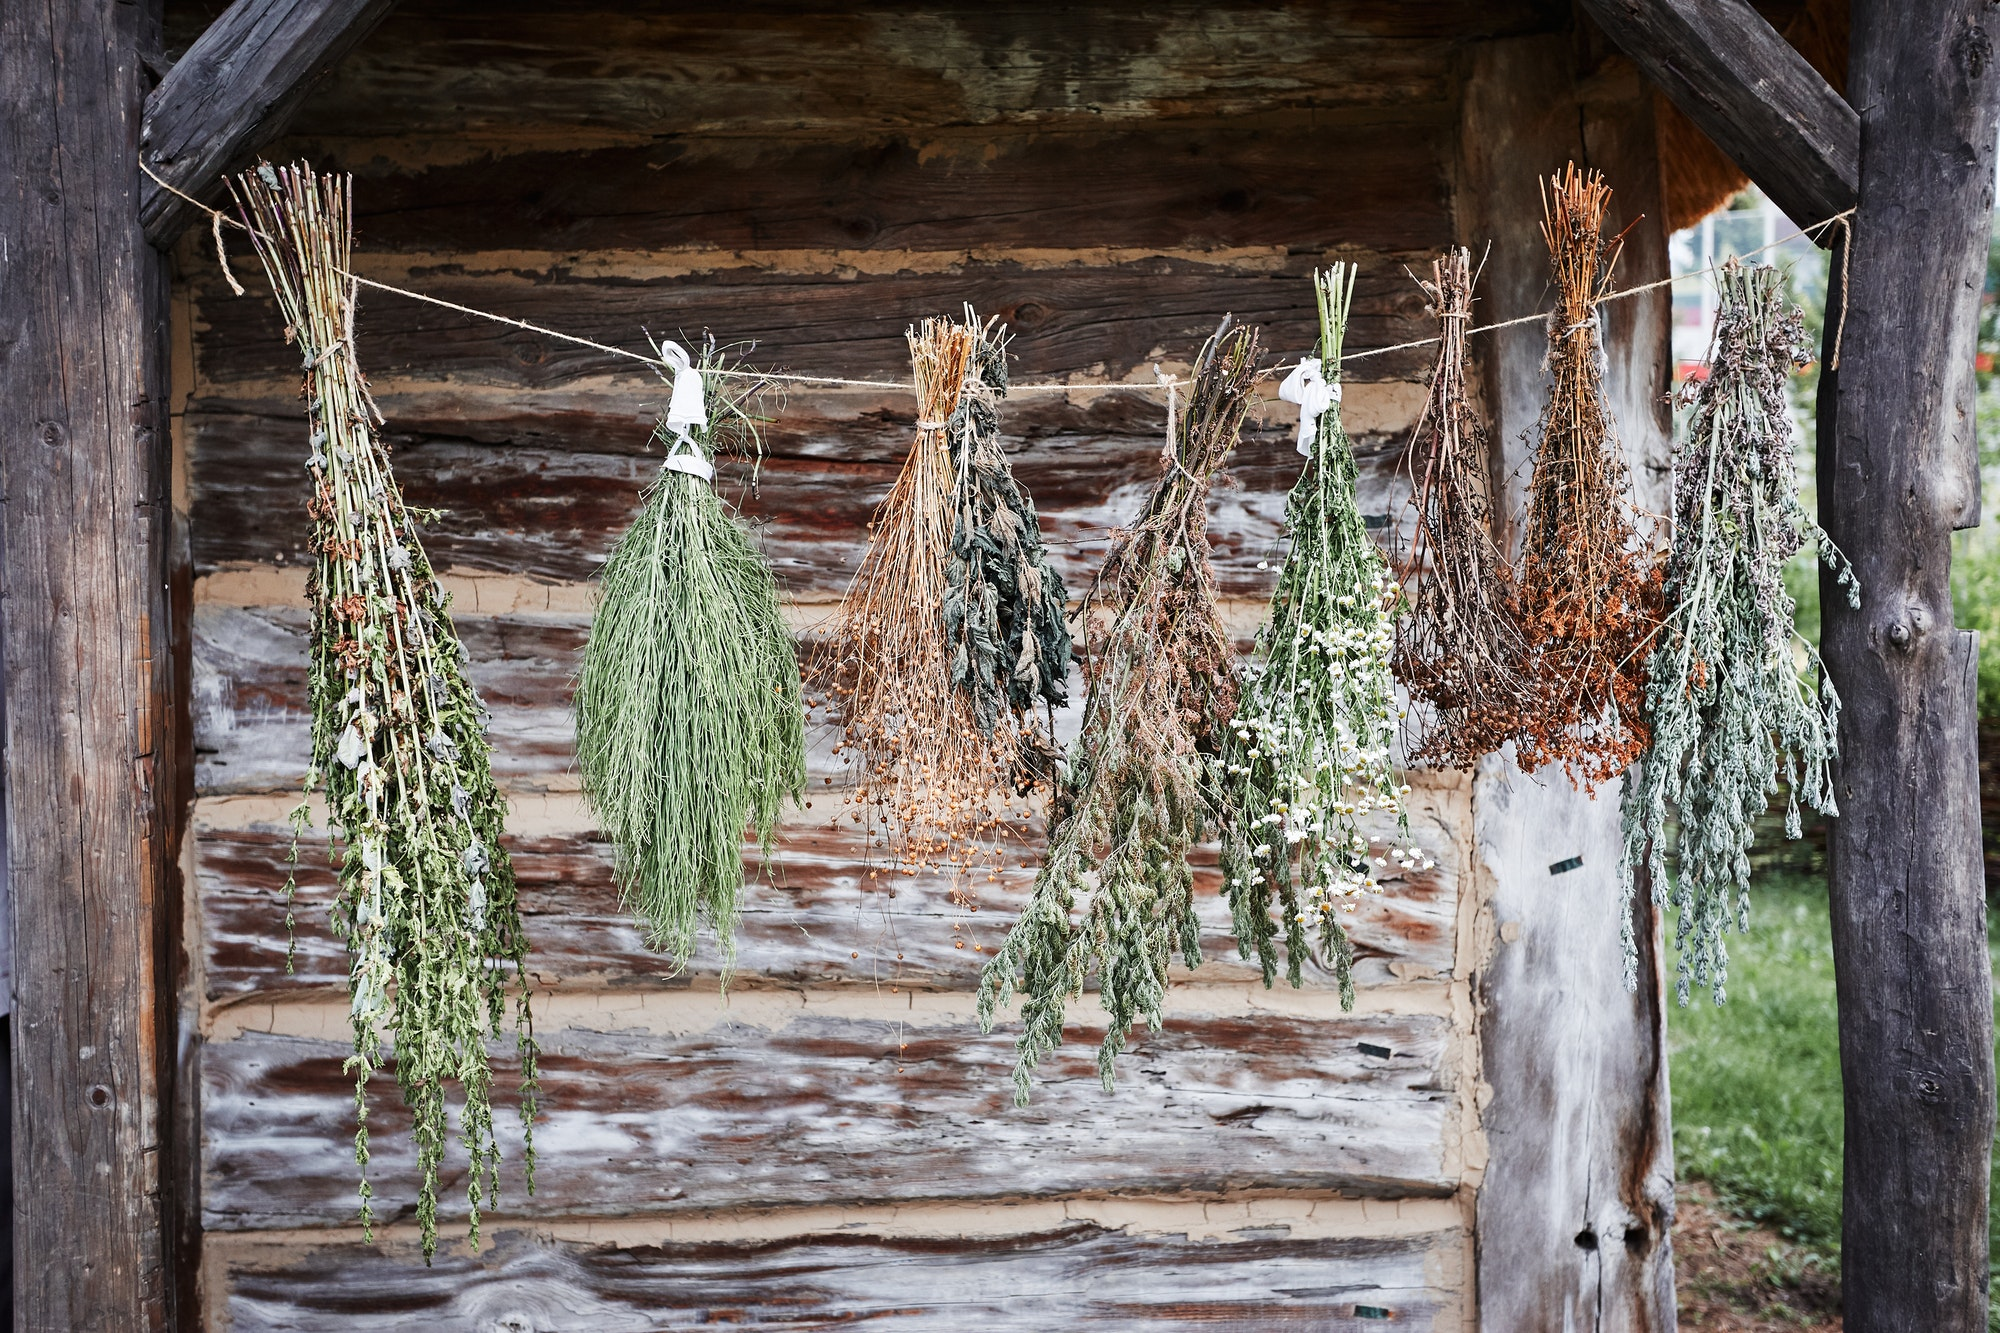 Some species of herbs are withering, hanging on a linen string outdoors at front of old cottage